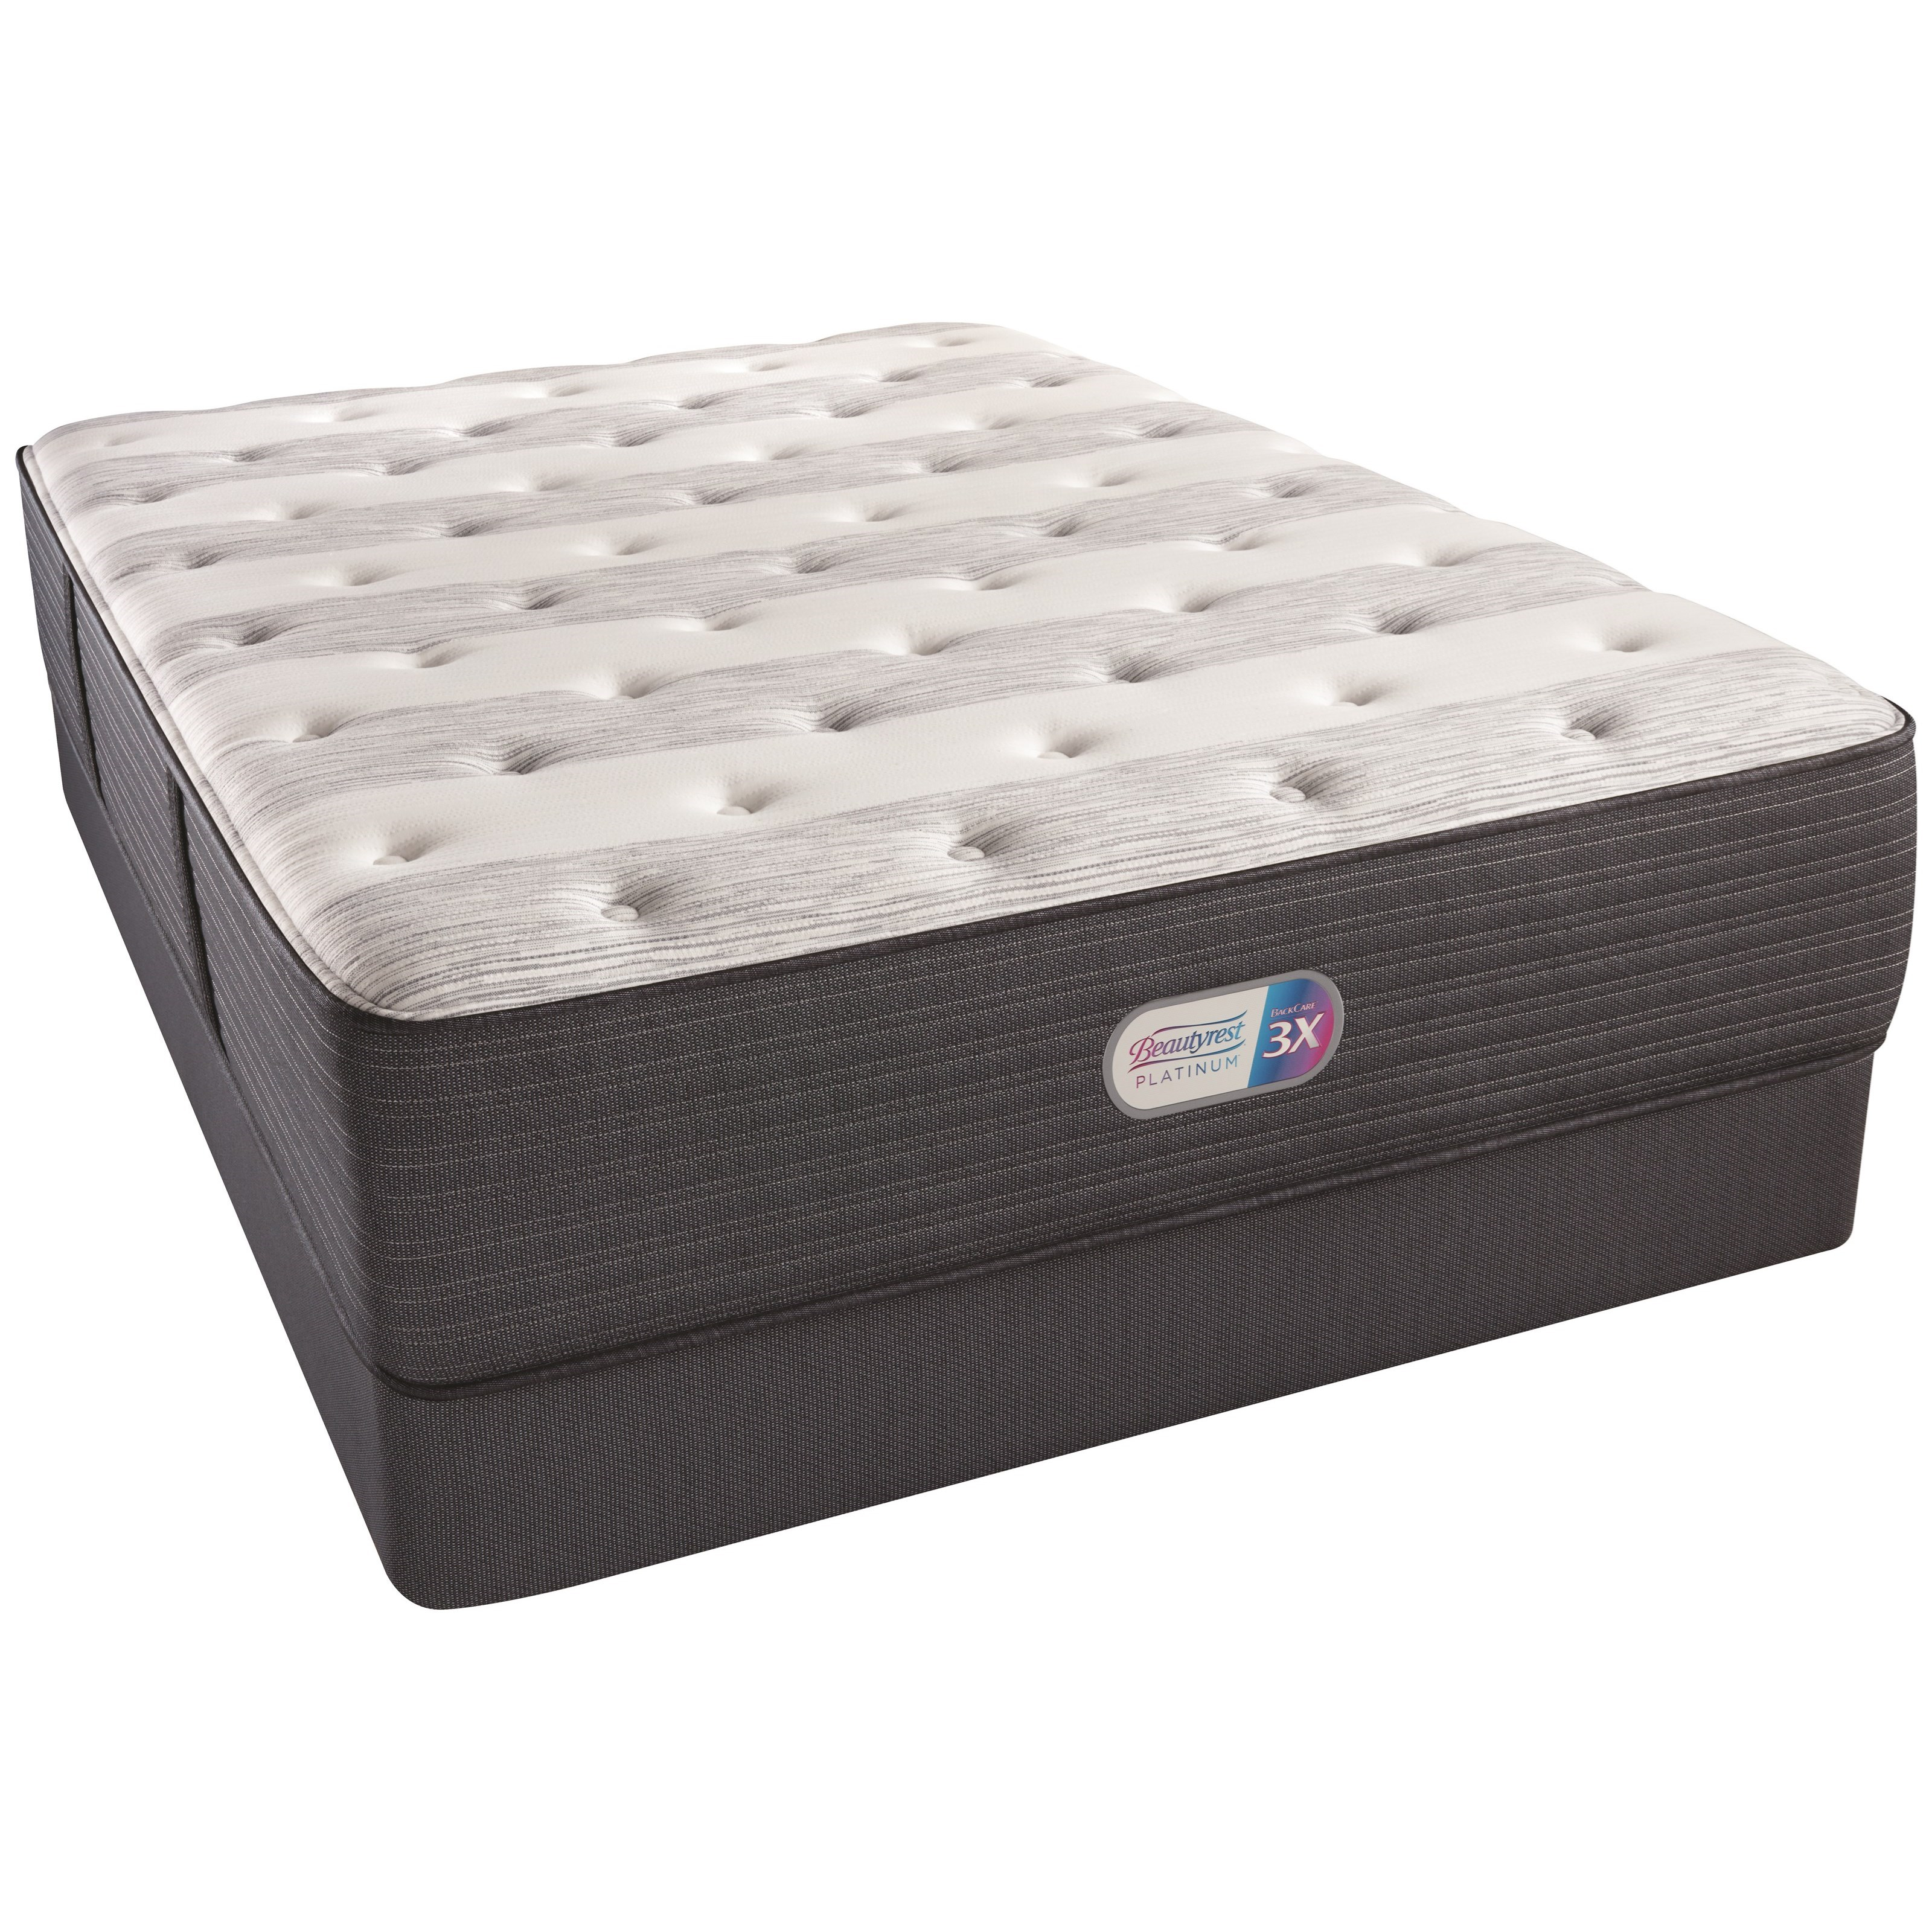 Beautyrest Platinum Kenway Plush Beautyrest Twin XL Set - Item Number: 145Plush-TXL+700600254-5020